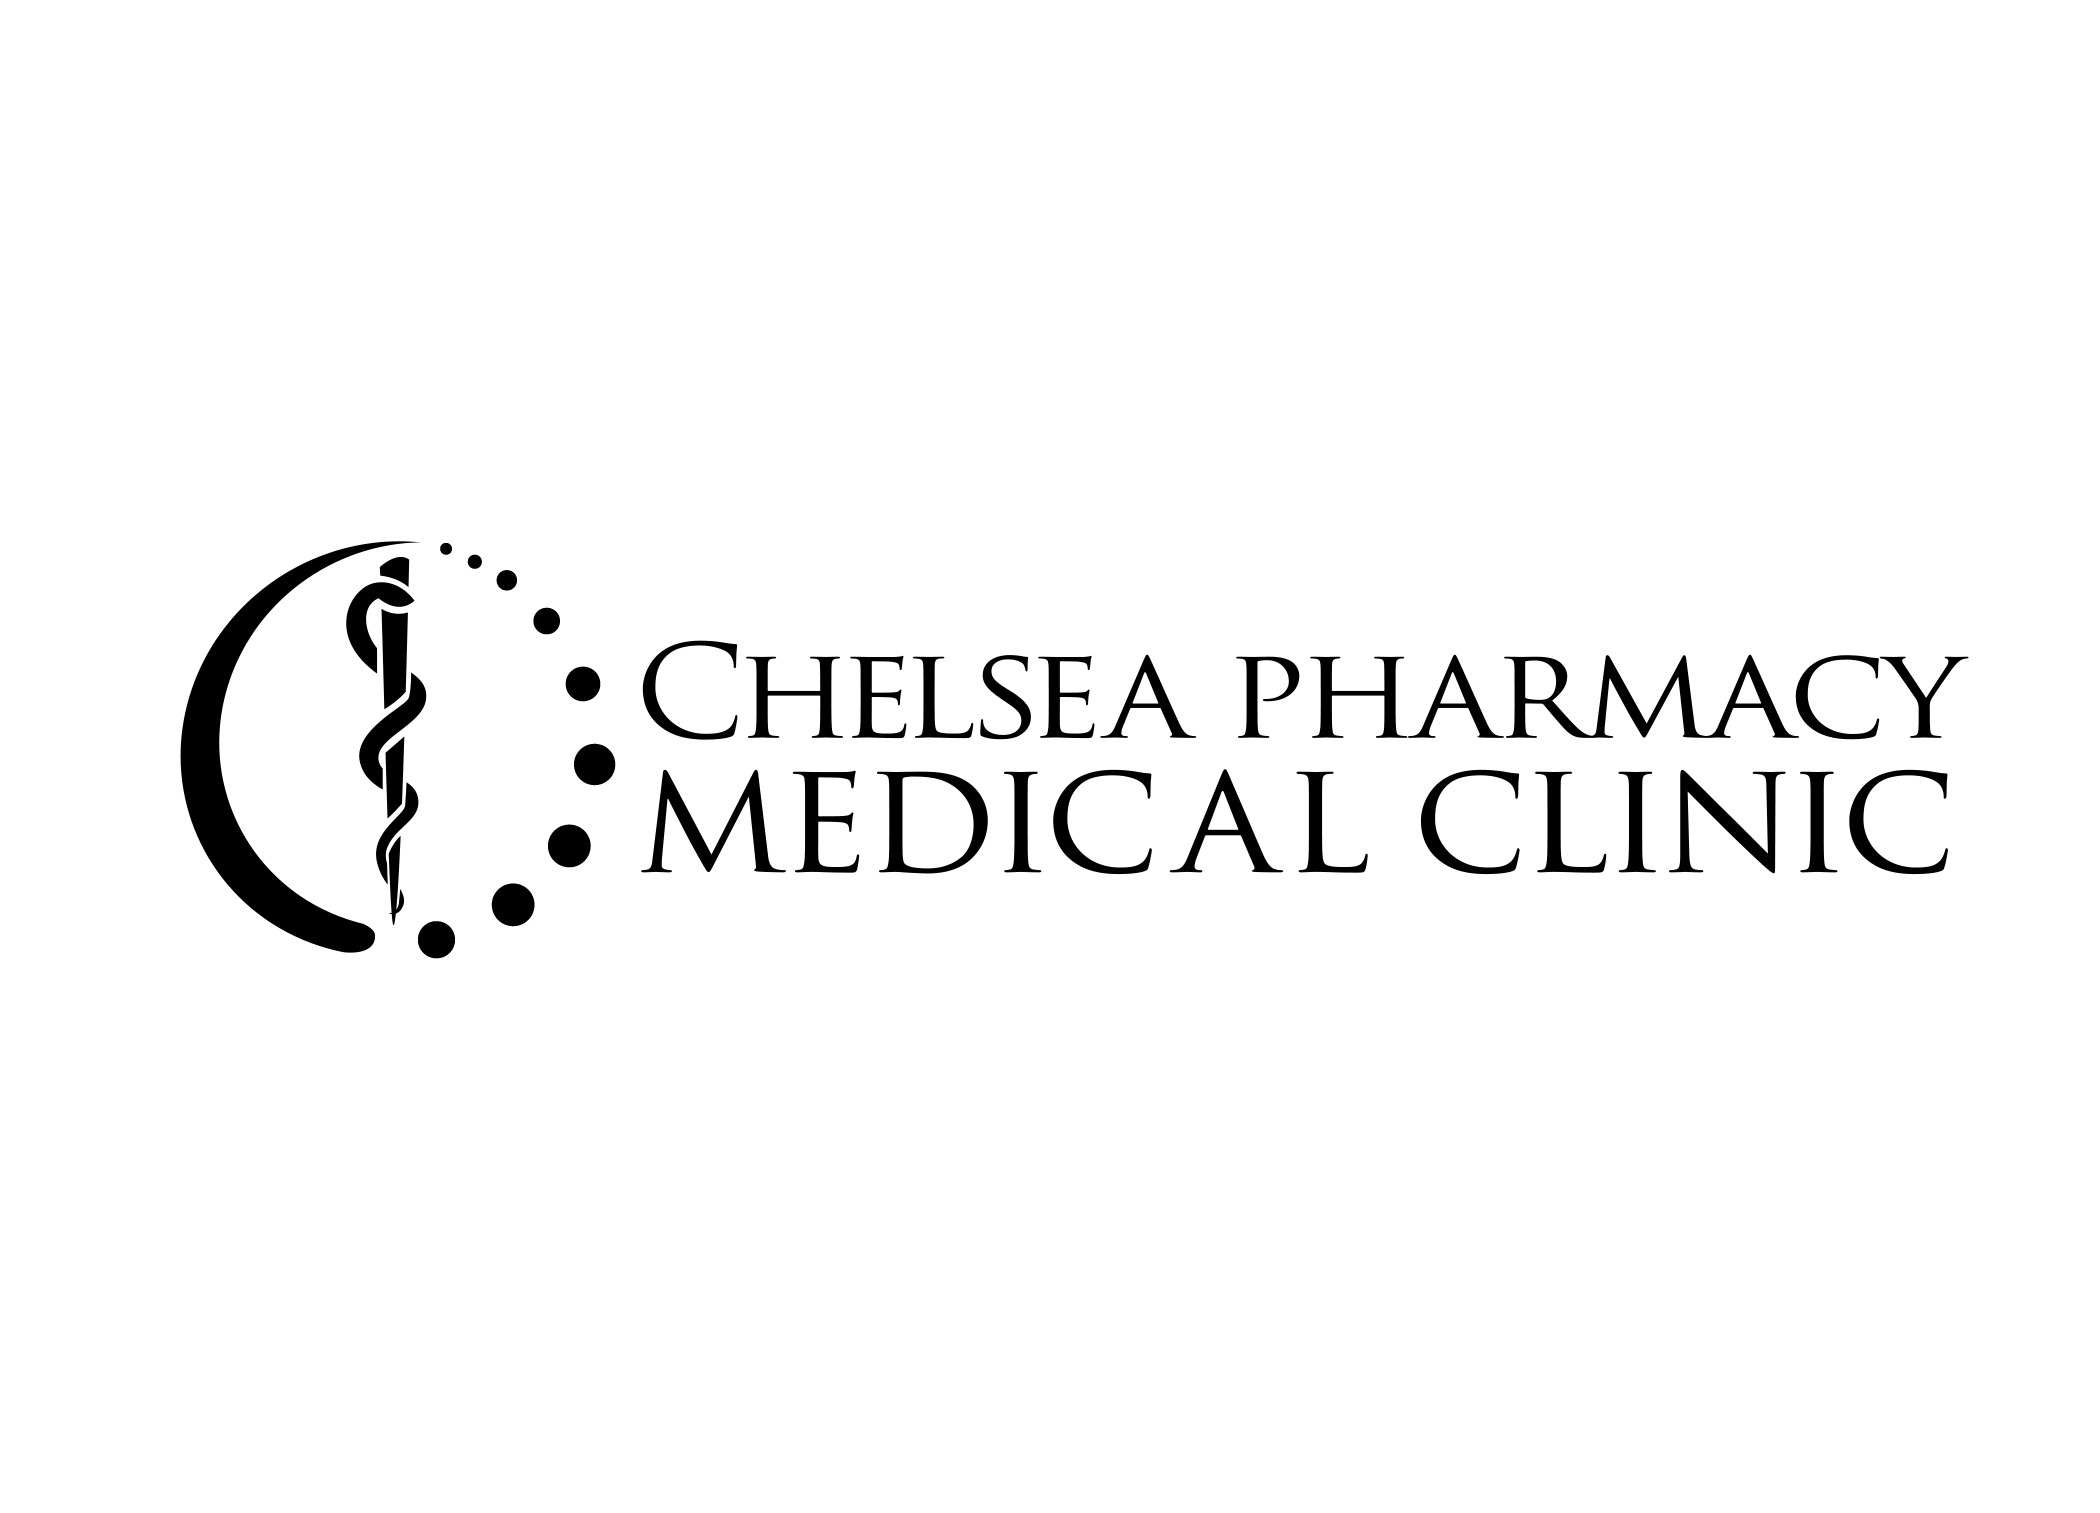 Chelsea Pharmacy Medical Clinic